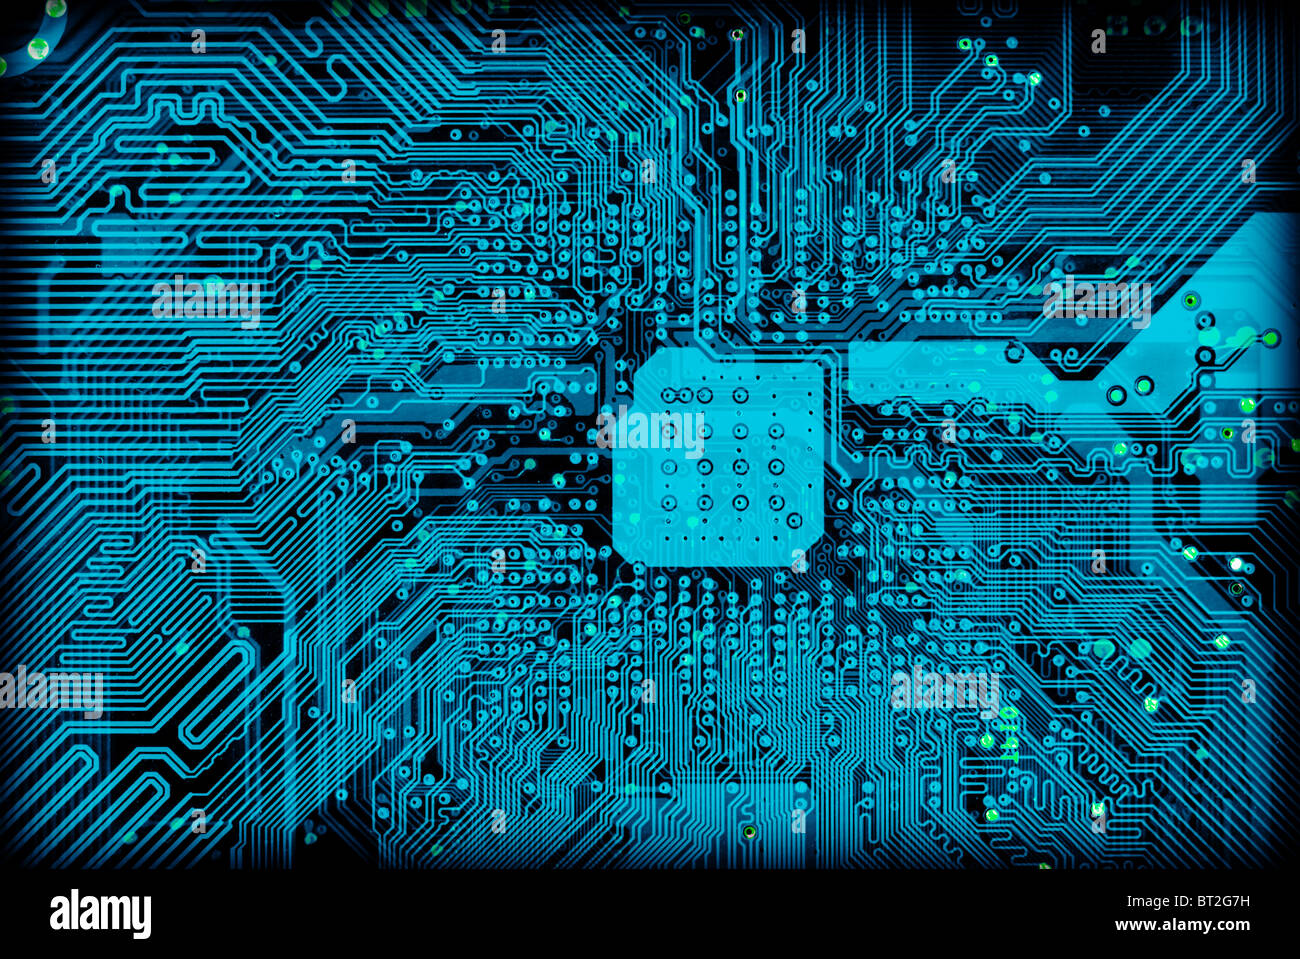 Tech industrial electronic blue background texture - Stock Image